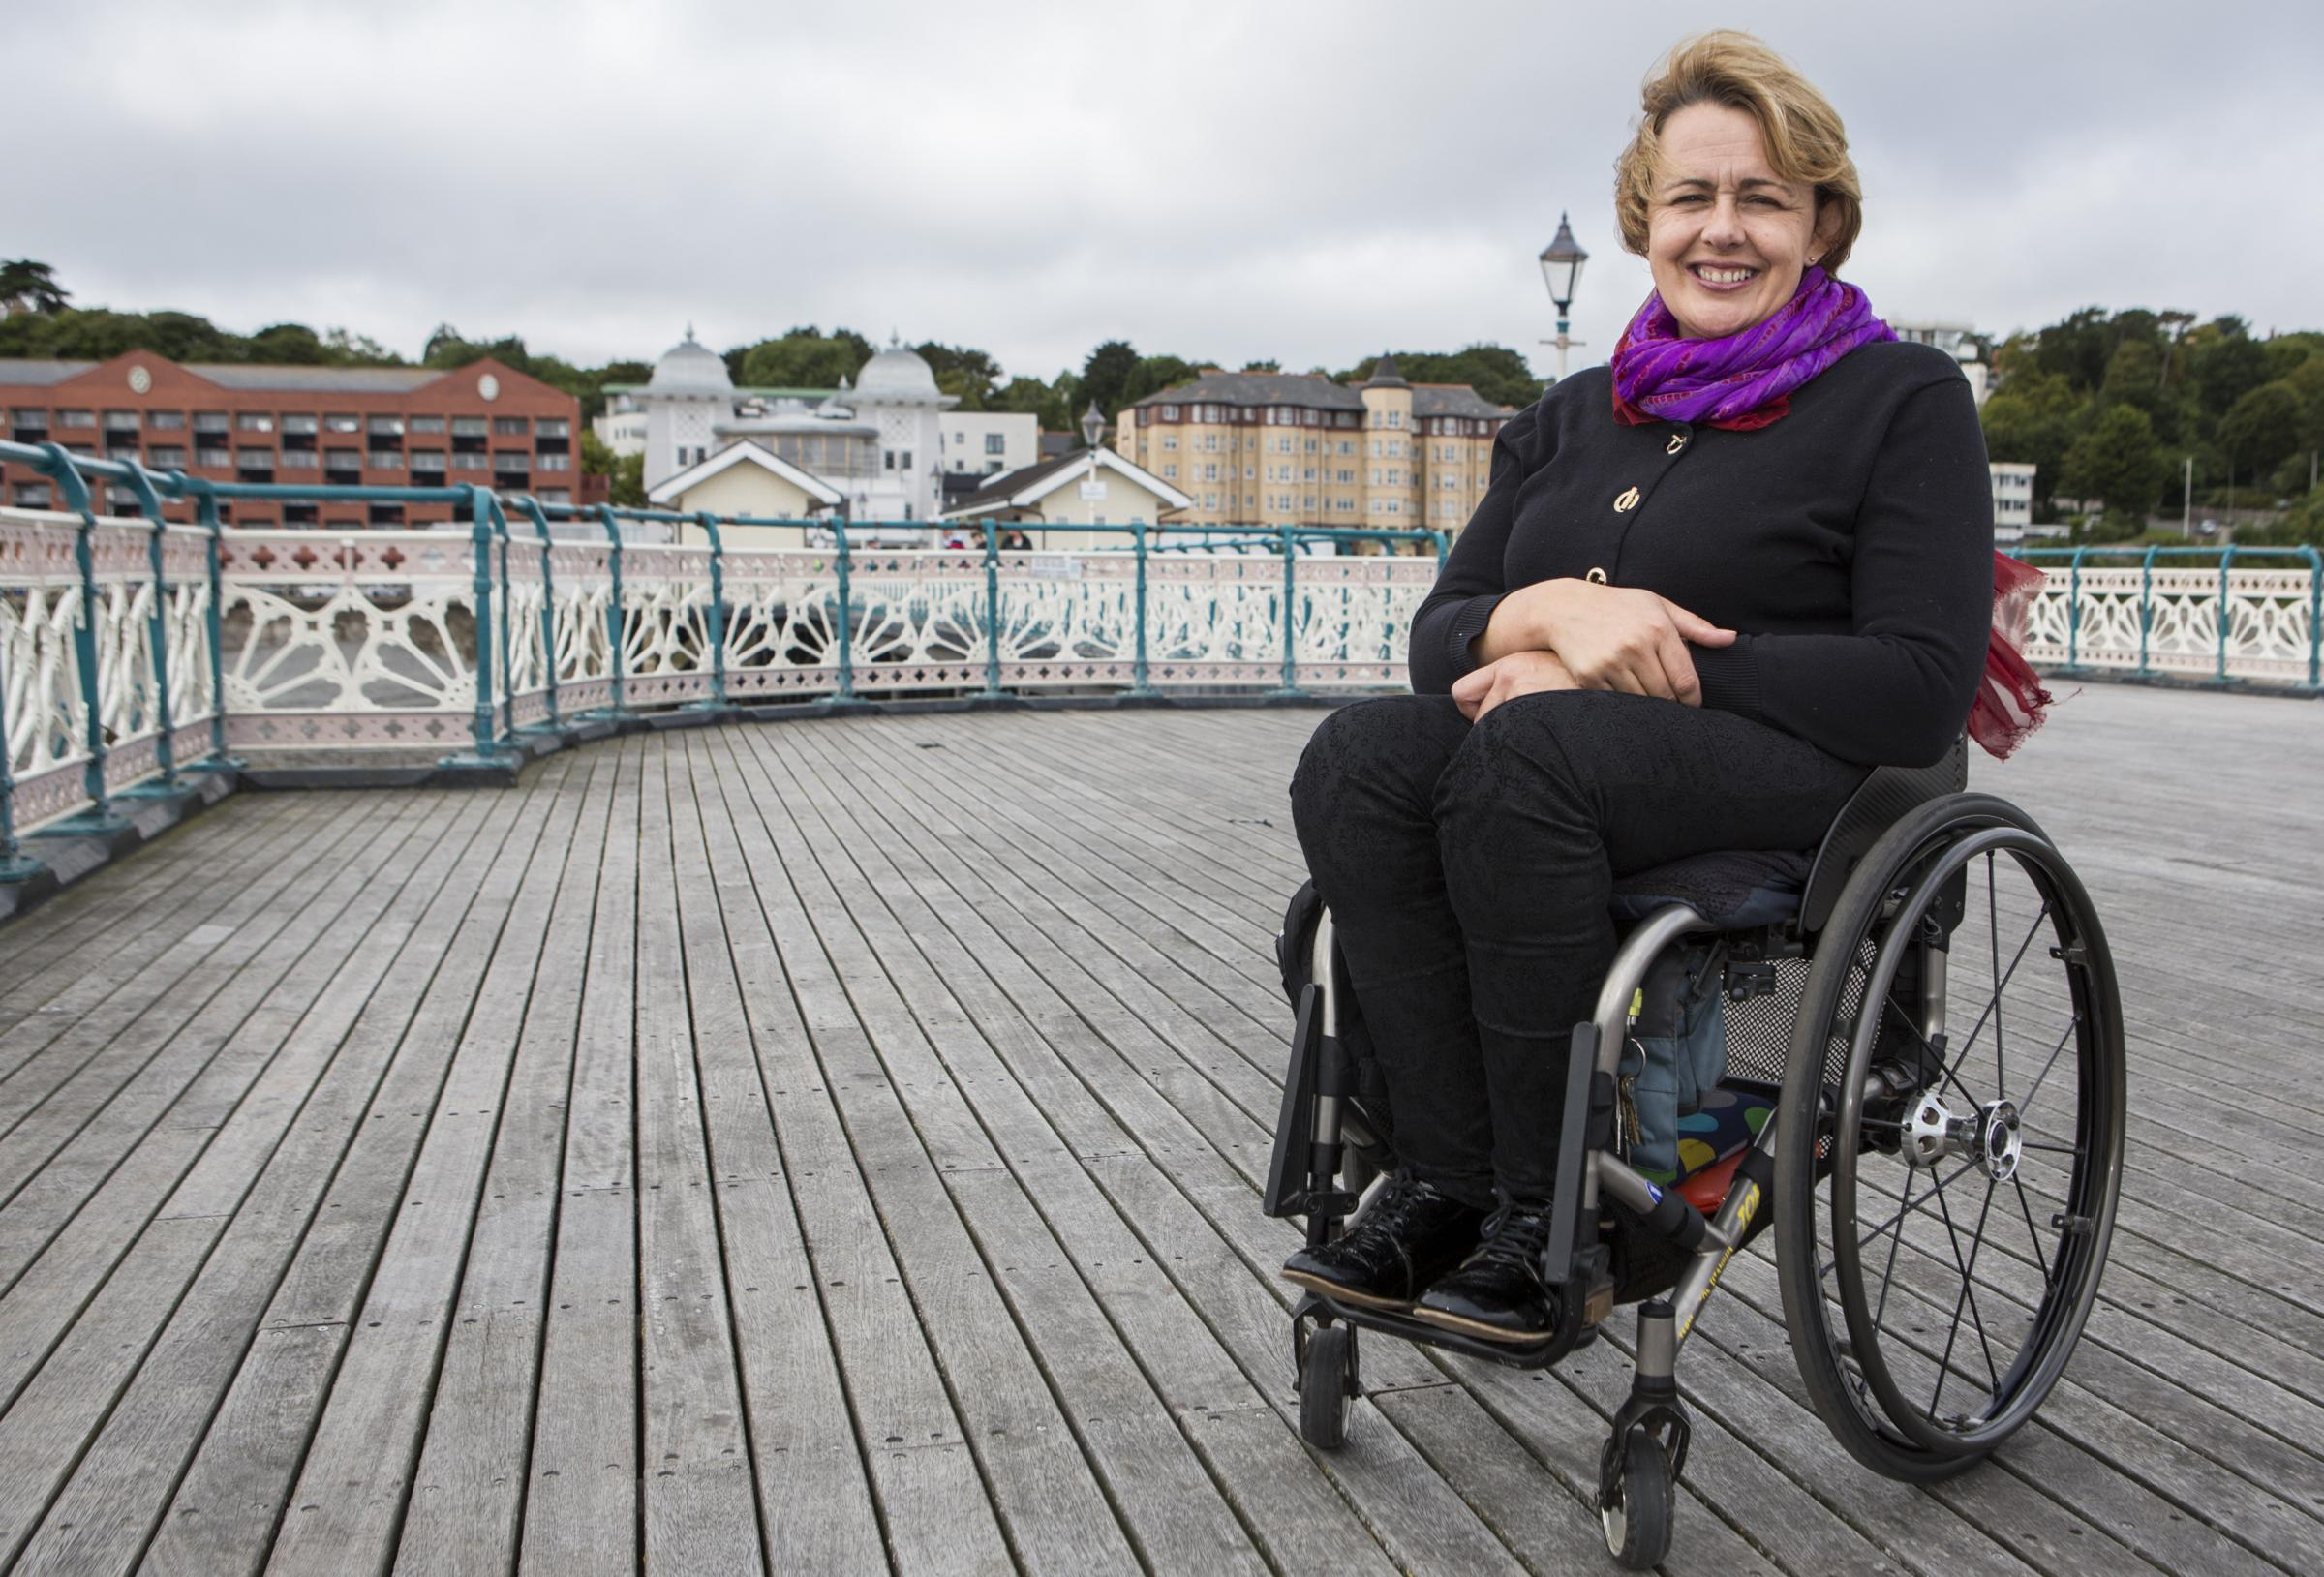 COMING HOME: Tanni Grey-Thompson on Penarth Pier during filming for 'Coming Home'